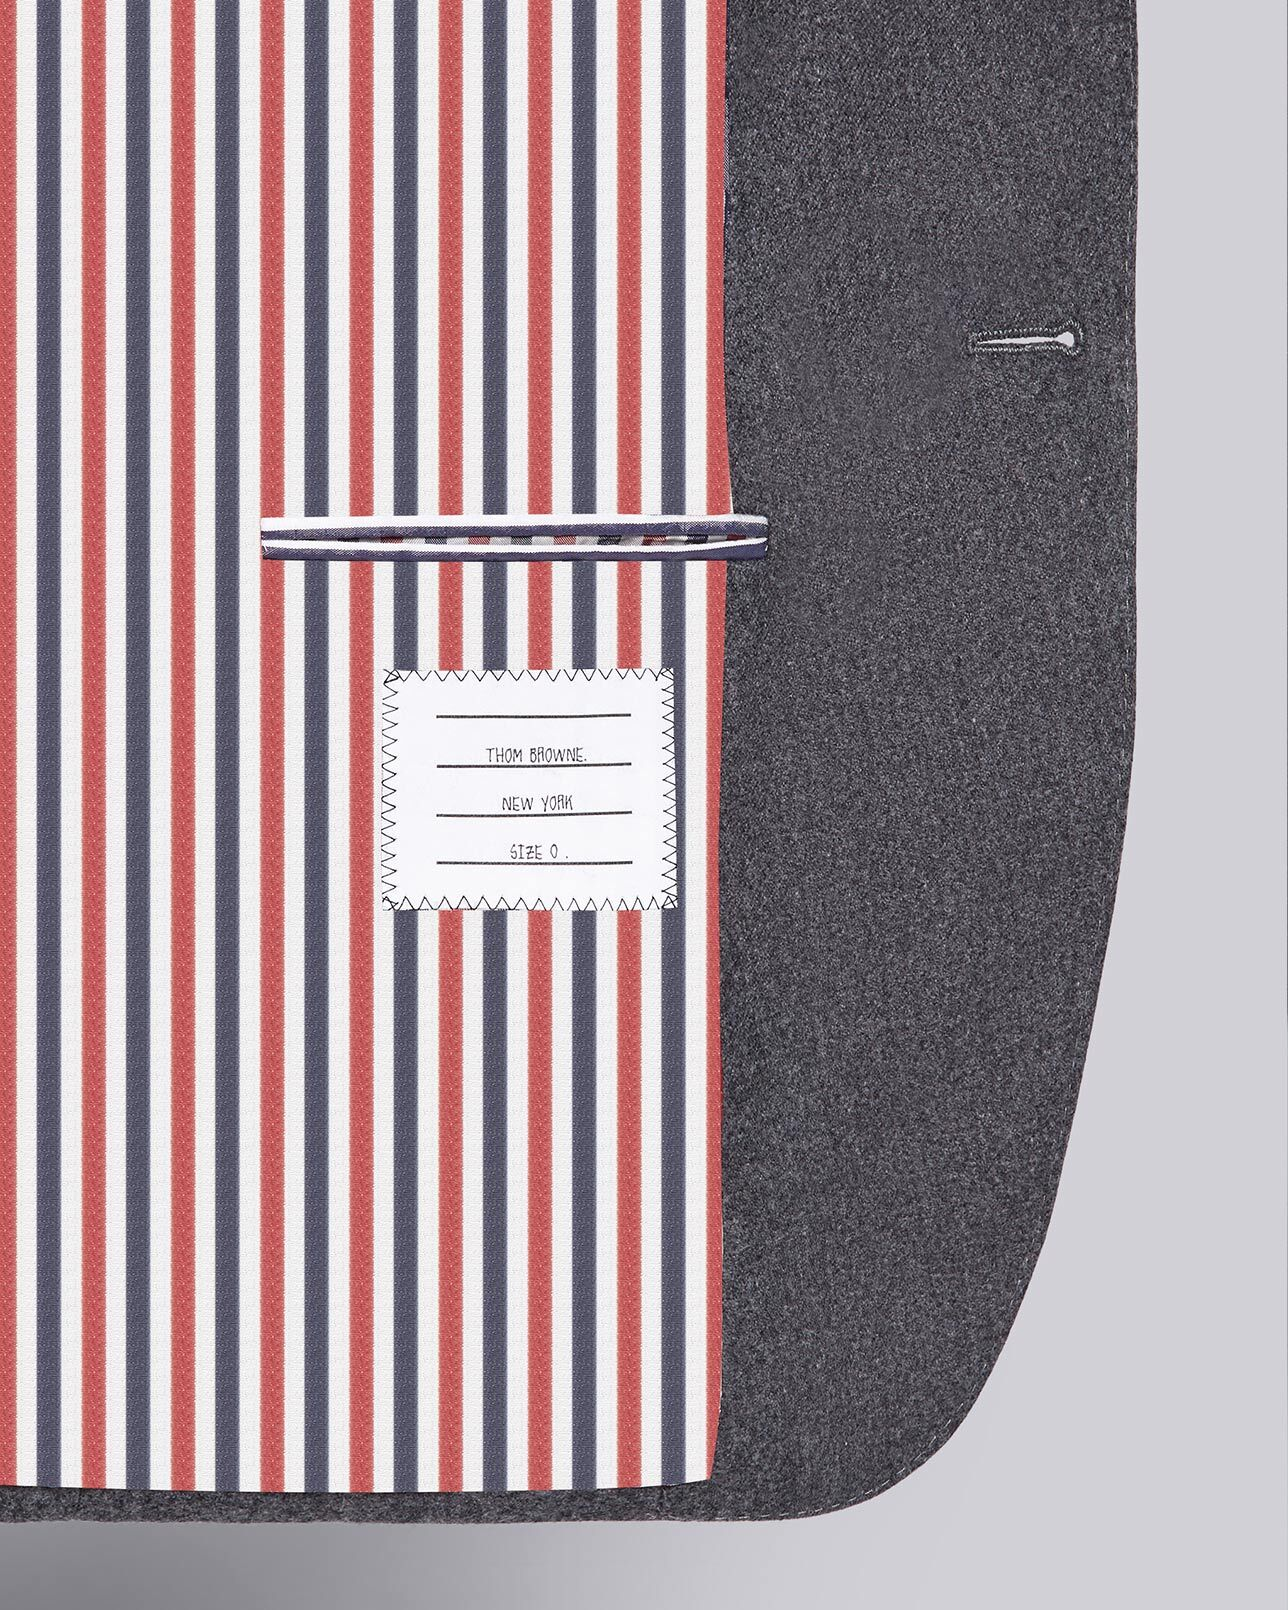 Discover Thom Browne Personalization and Customization.